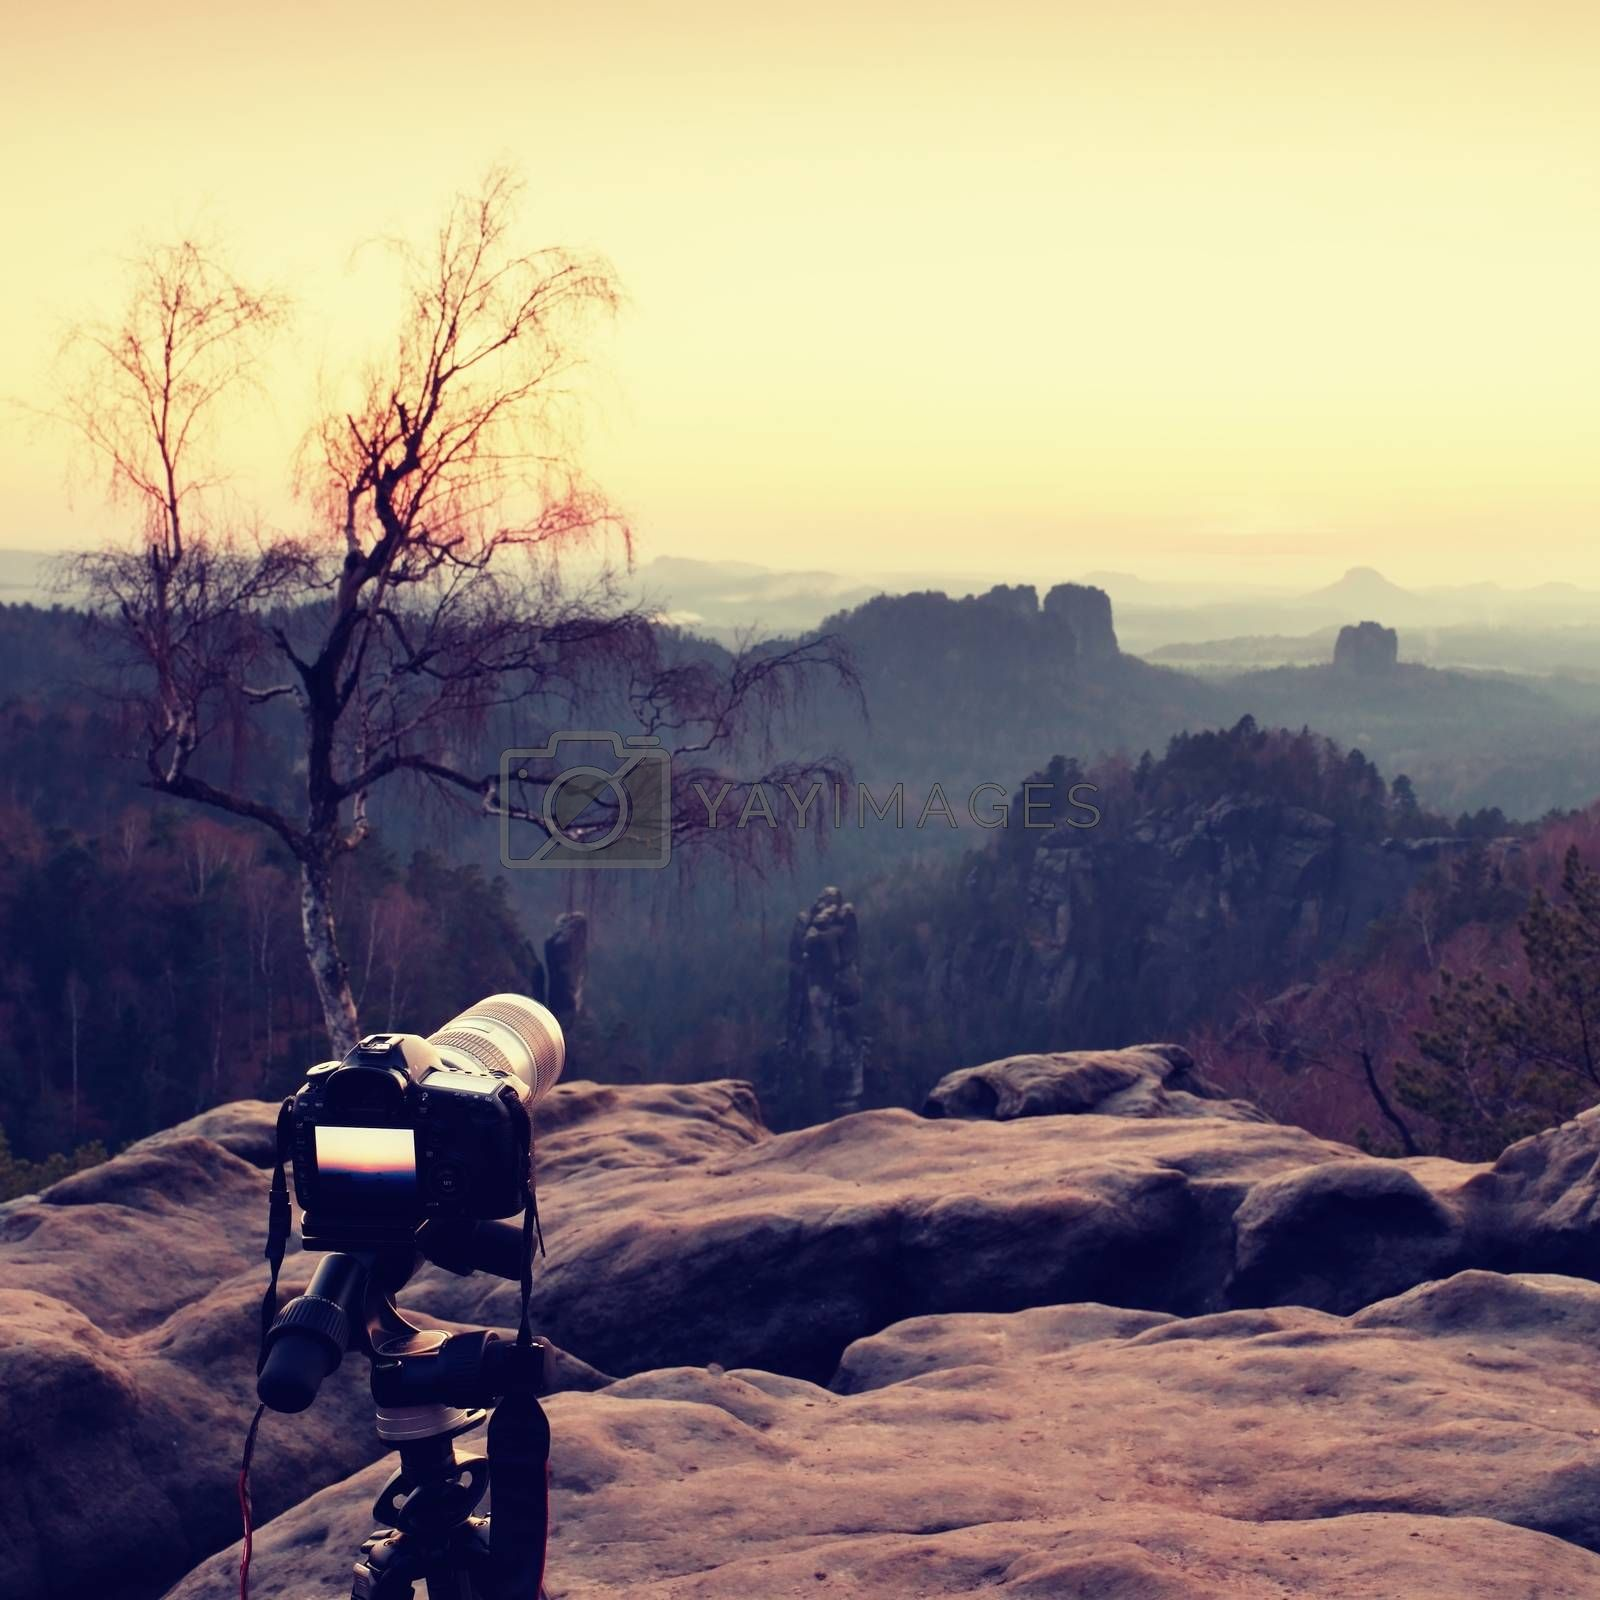 Tripod with big camera stand on mountain peak after sunset. Sharp sandstone cliffs at horizon